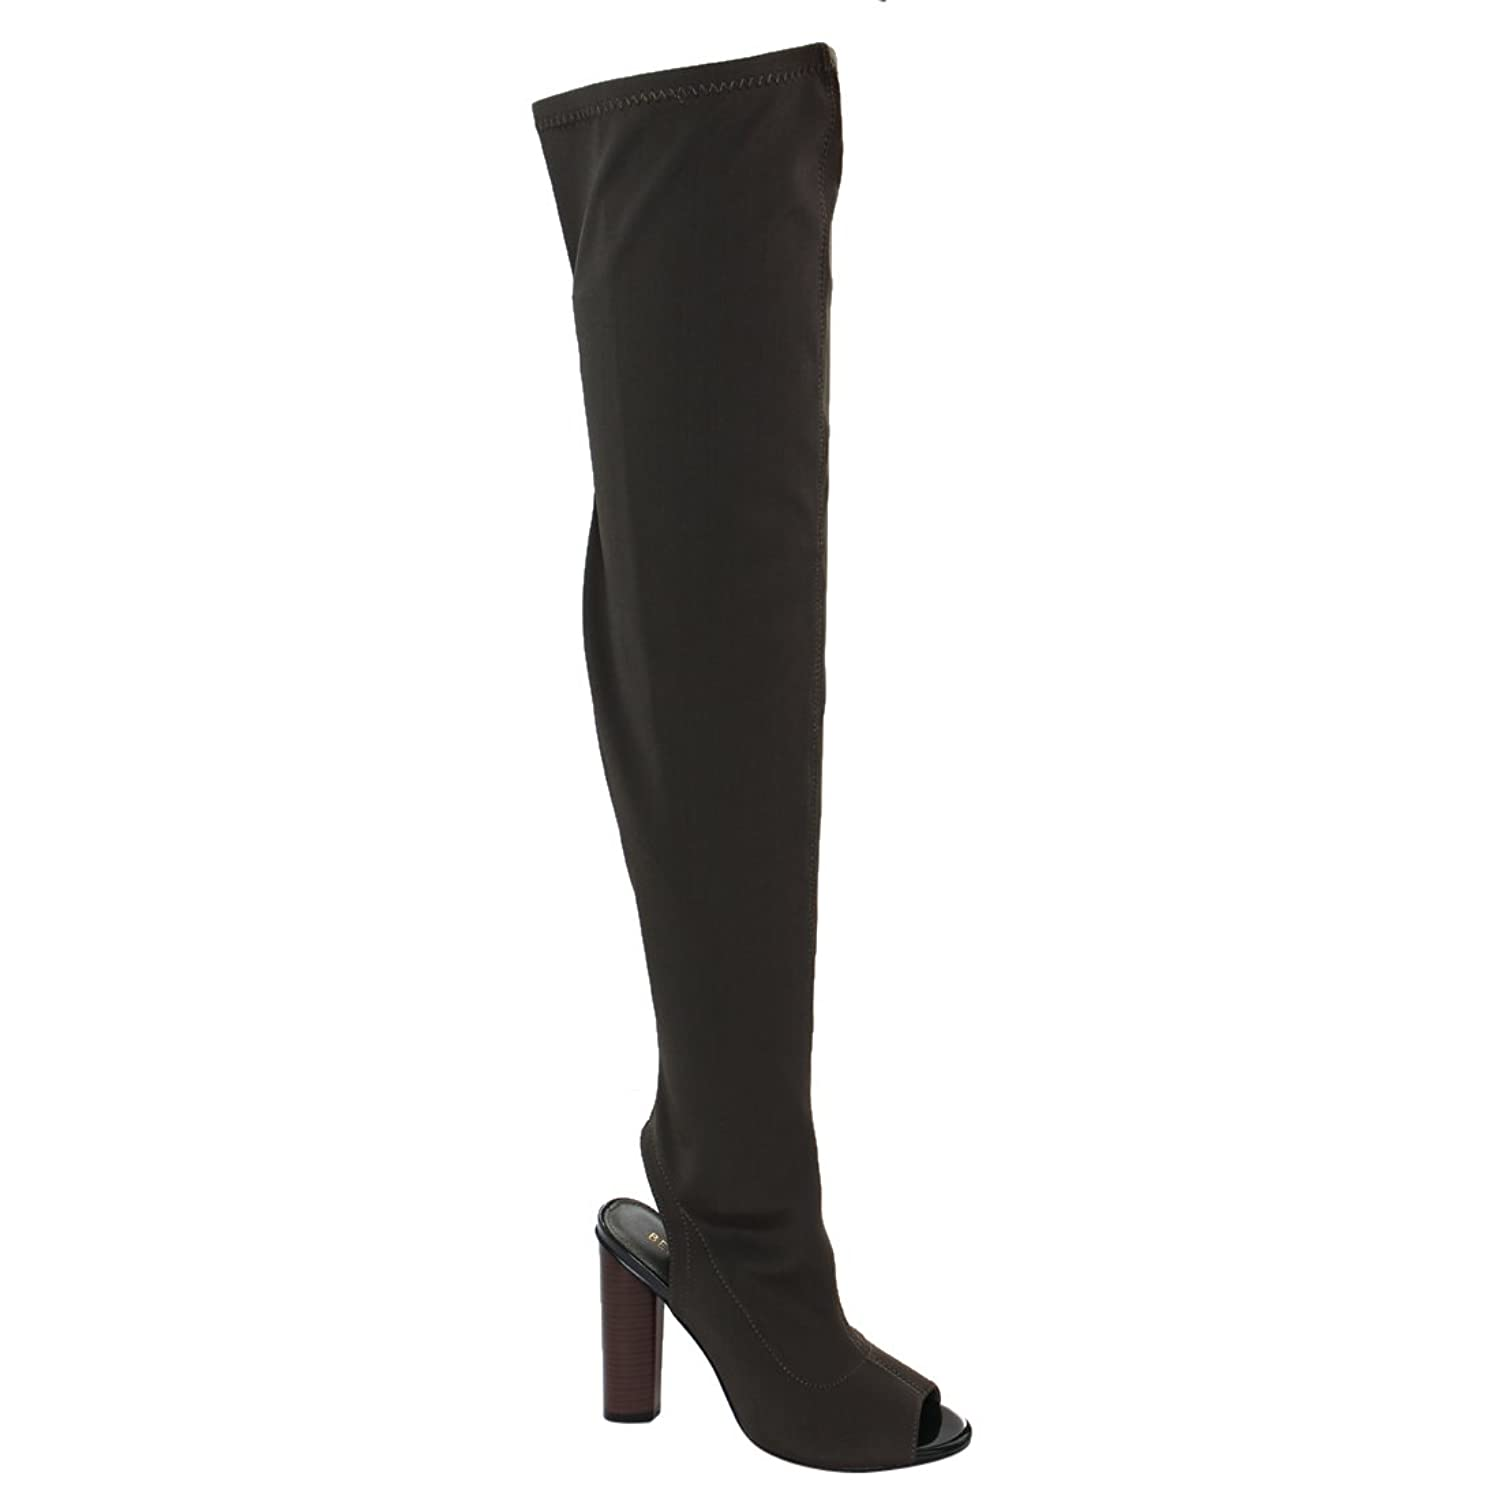 Beston FG20 Women's Stretchy Over The Knee Peep Toe Stacked Heel Boots